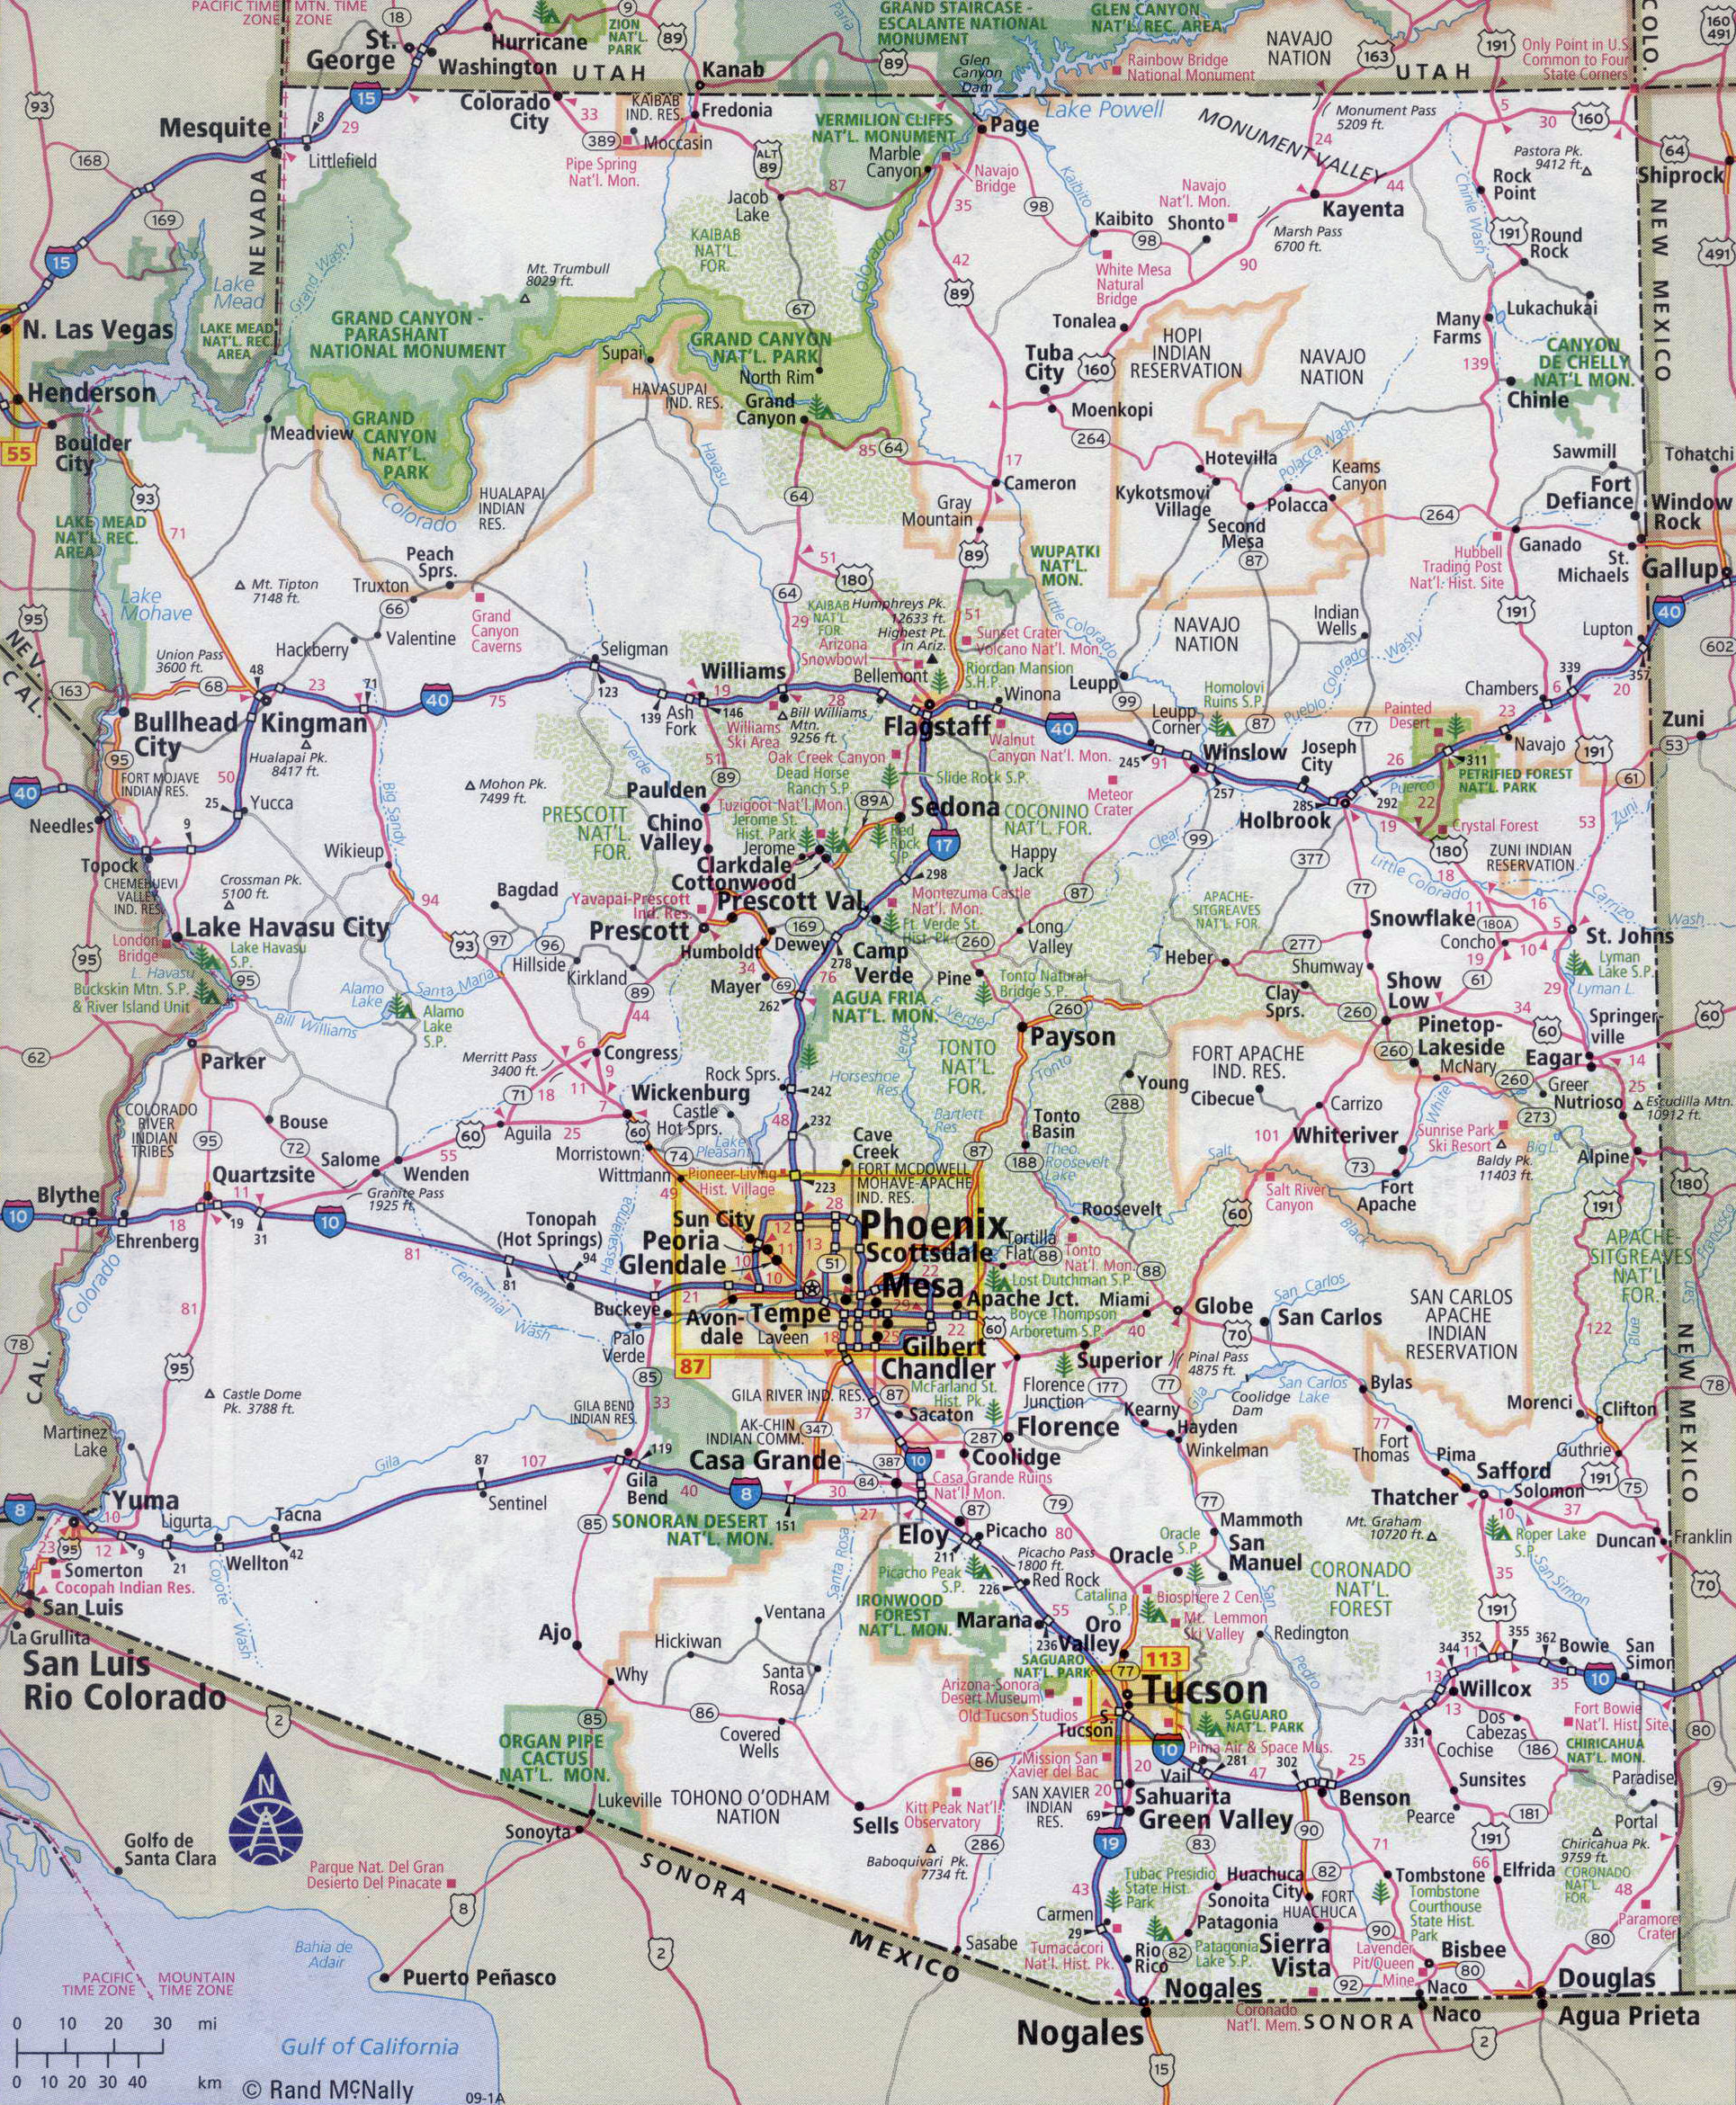 Large Detailed Roads And Highways Map Of Arizona State With All - Road map usa states